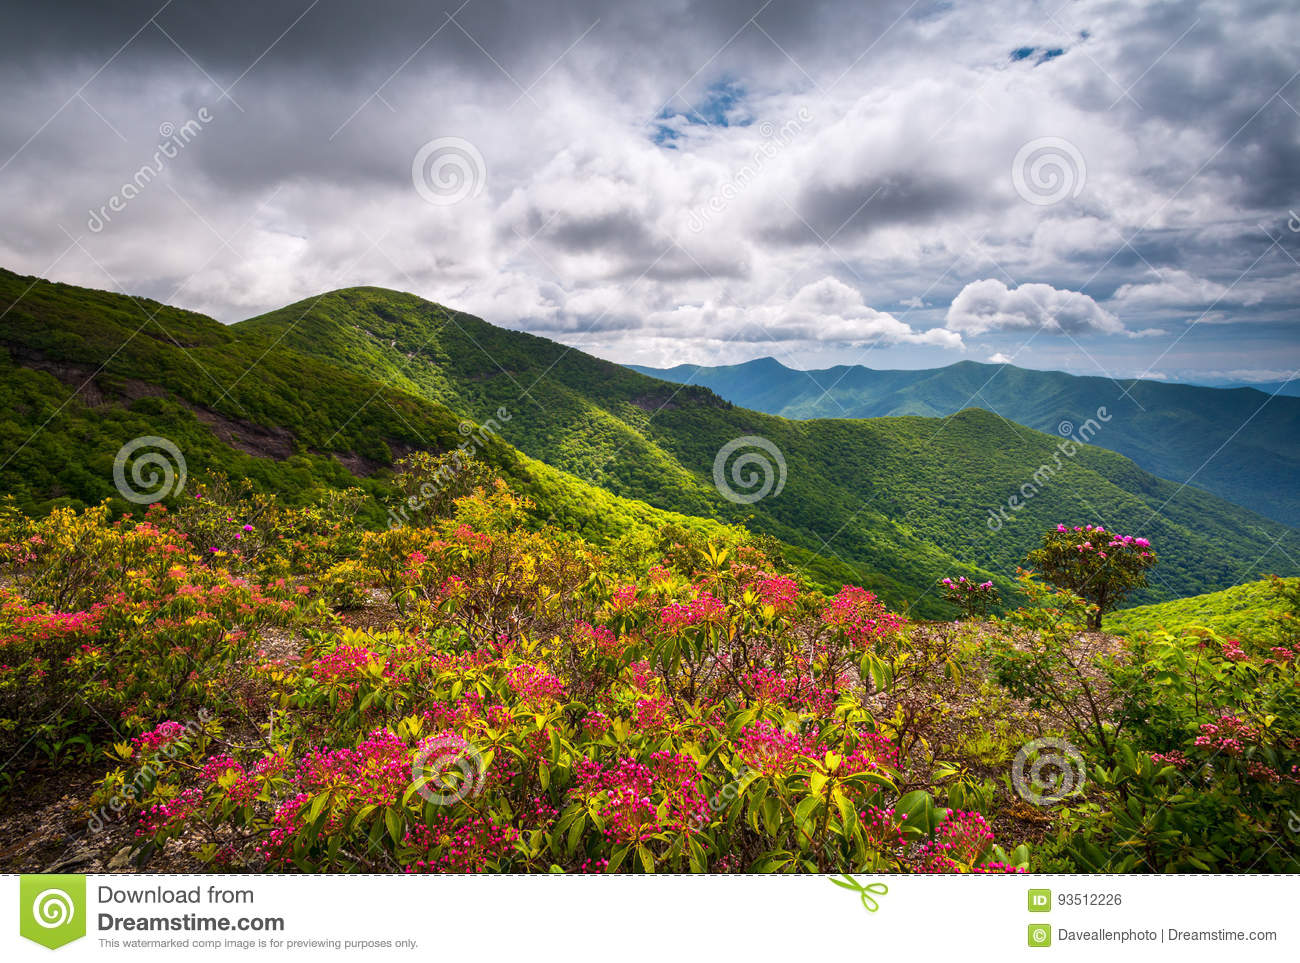 Mountain Laurel Spring Flowers Blooming In Appalachian Mountains